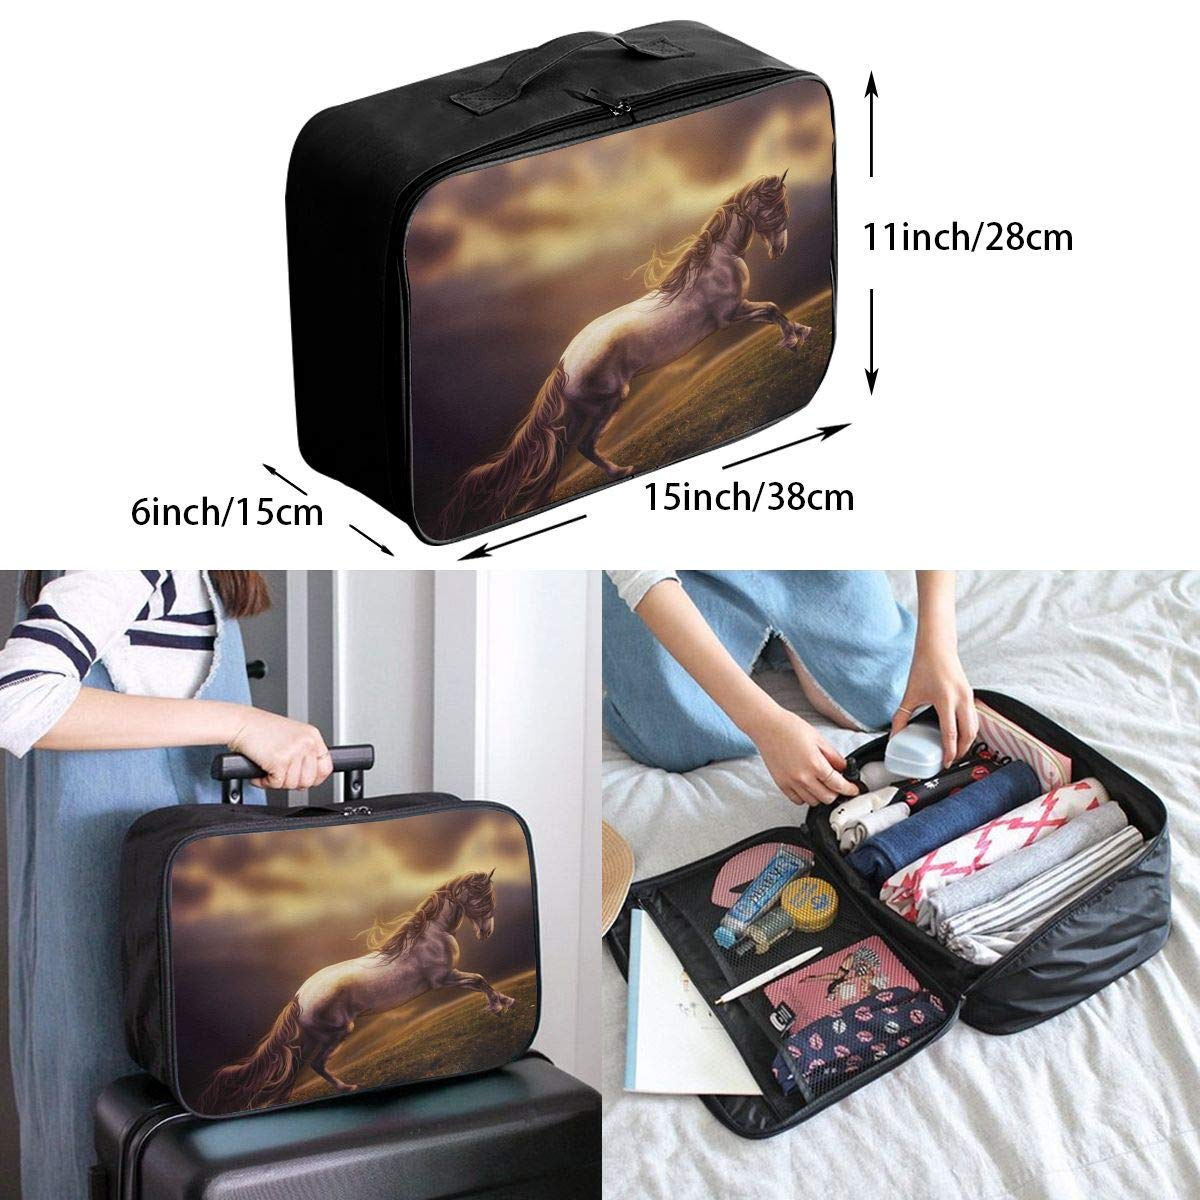 Travel Luggage Duffle Bag Lightweight Portable Handbag Fantasy Running Horse Print Large Capacity Waterproof Foldable Storage Tote